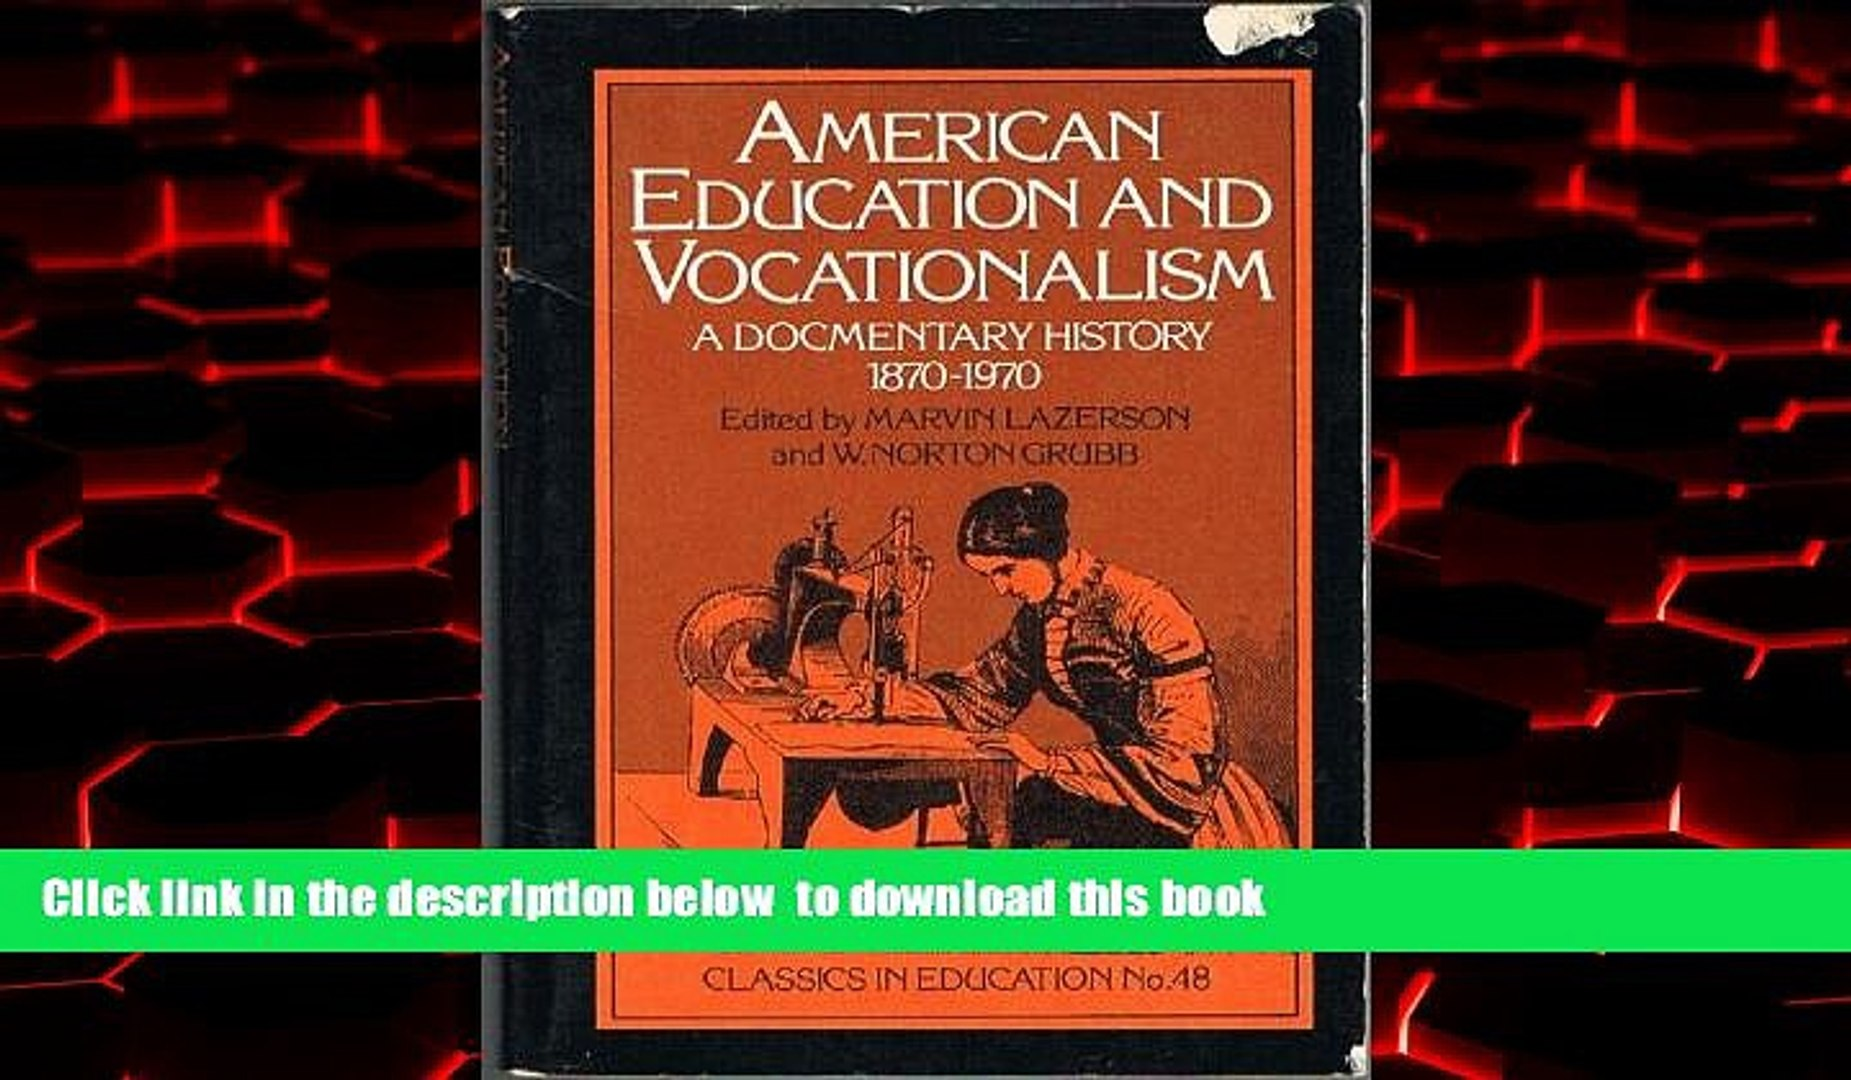 Buy NOW Marvin Lazerson American Education and Vocationalism: a Documentary History, 1870-1970